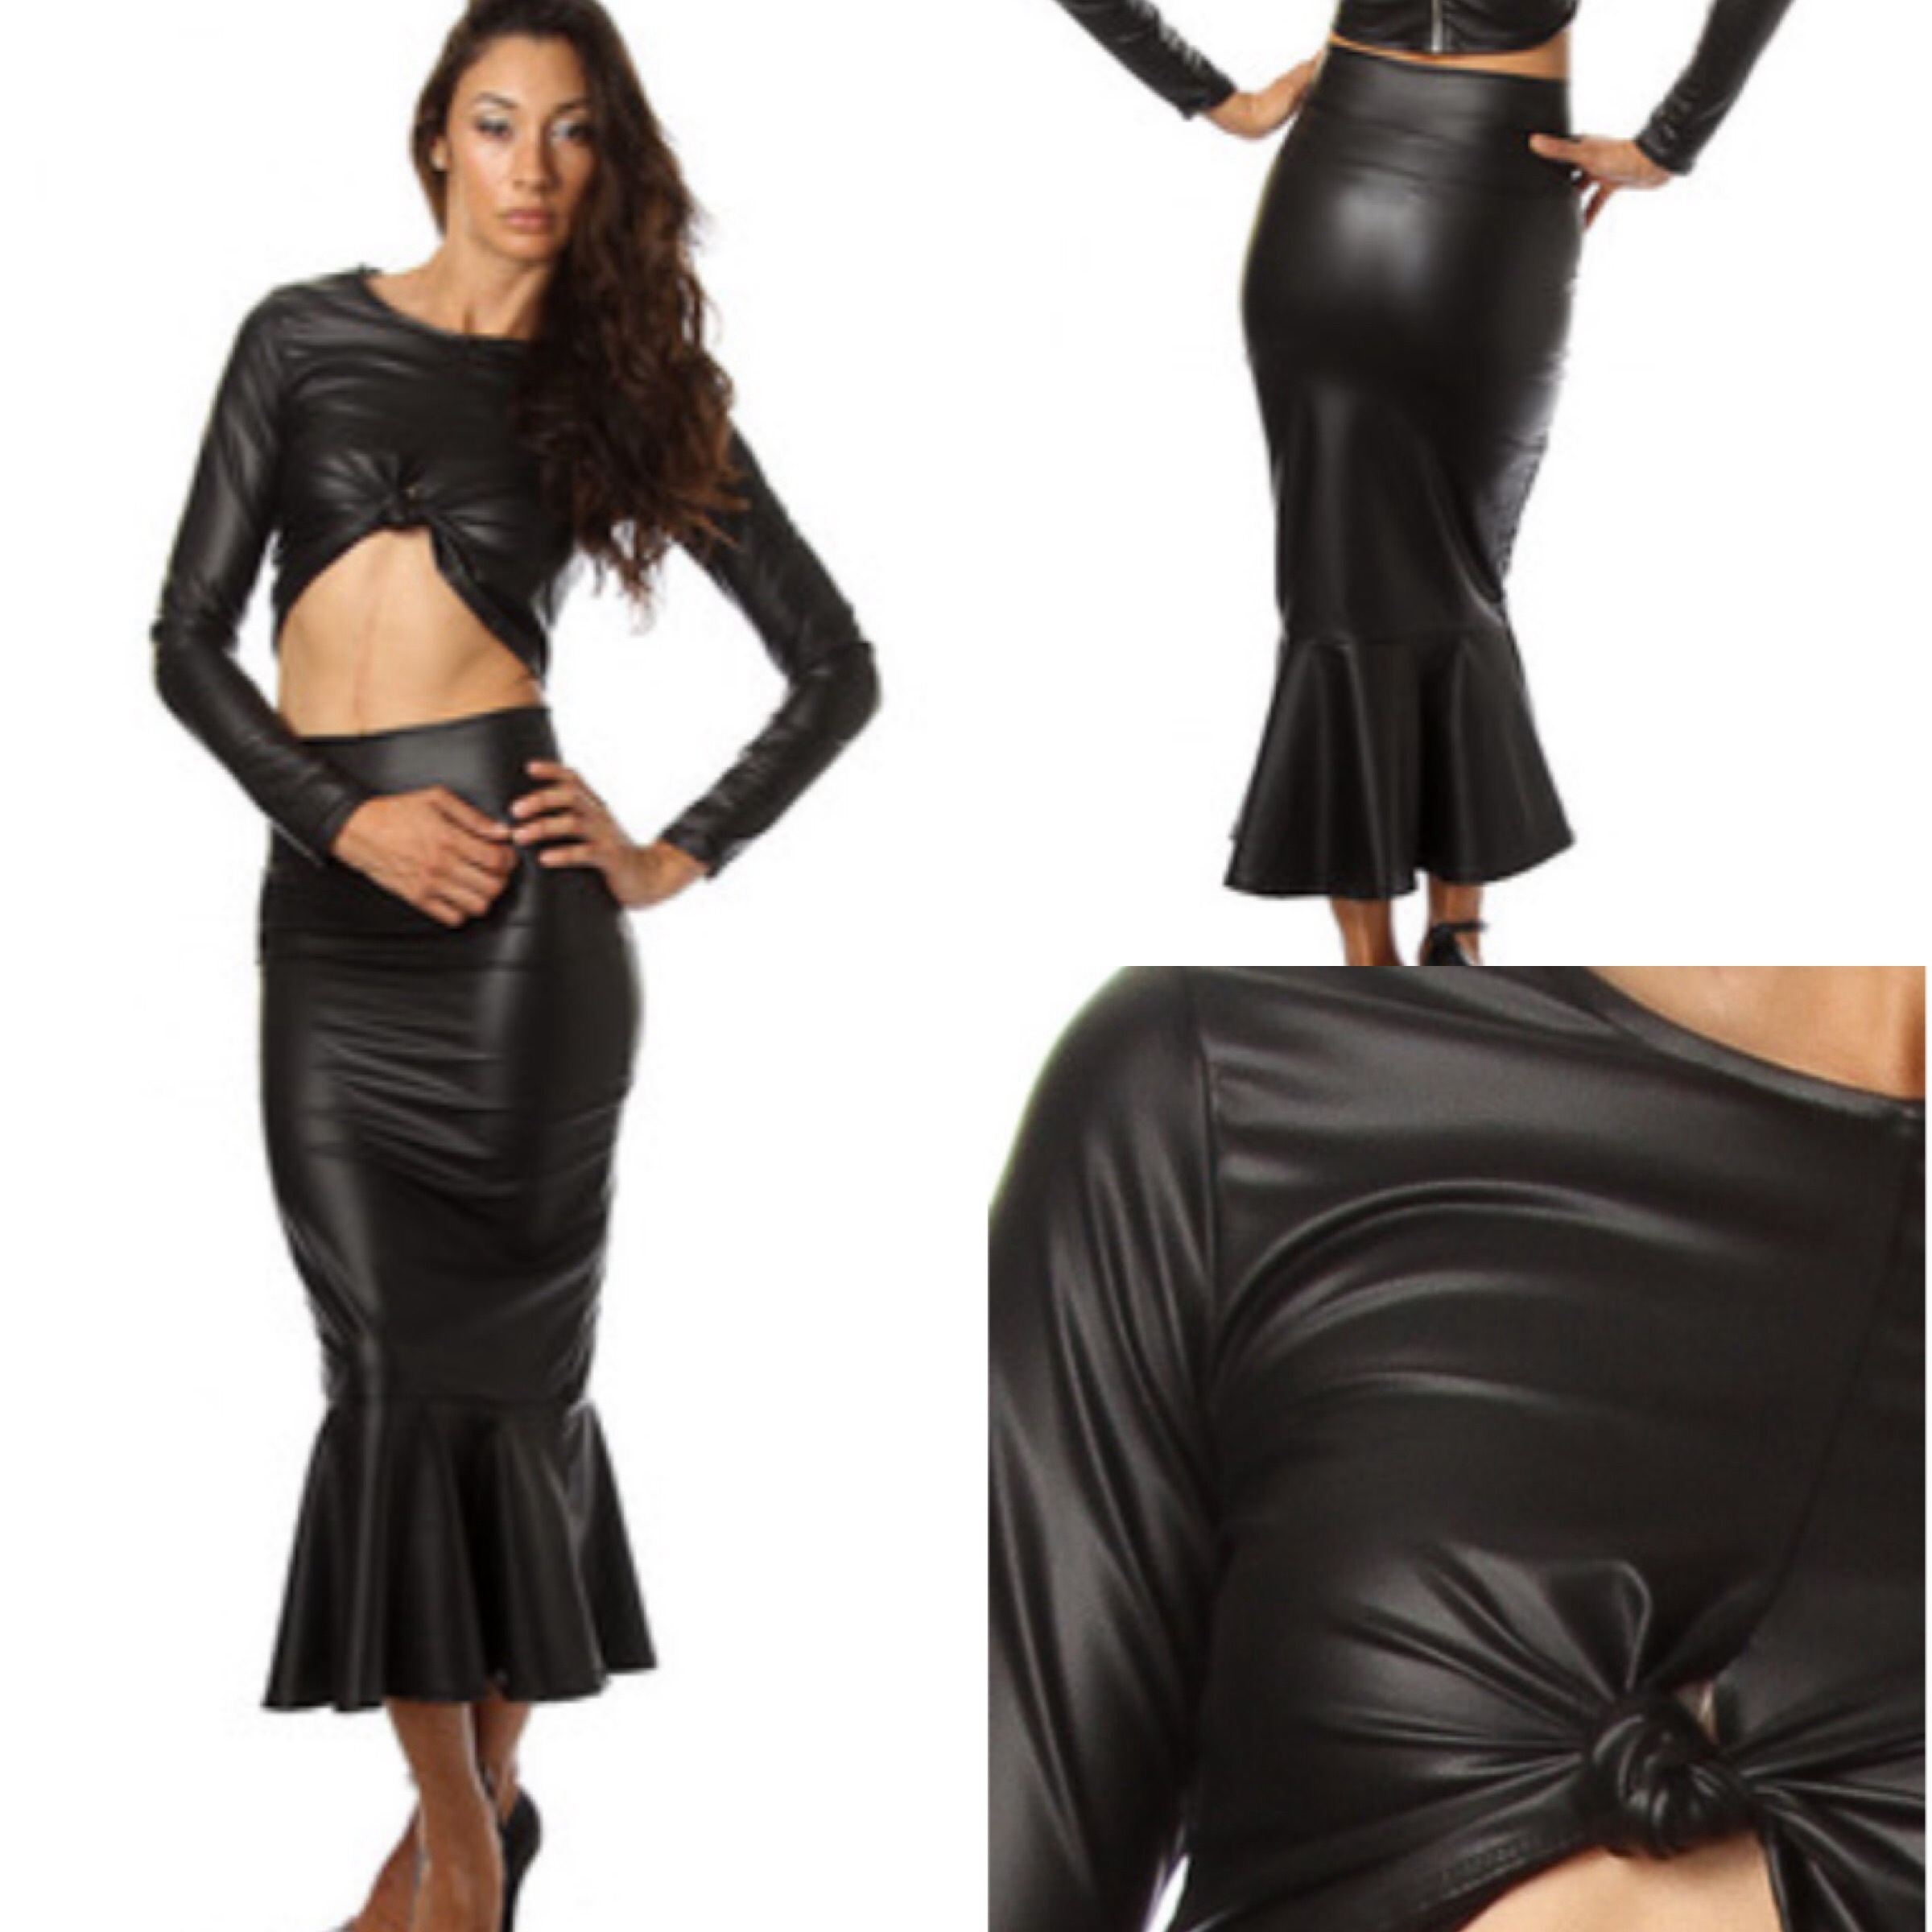 faux leather trumpet skirt crop top set 183 simply chic